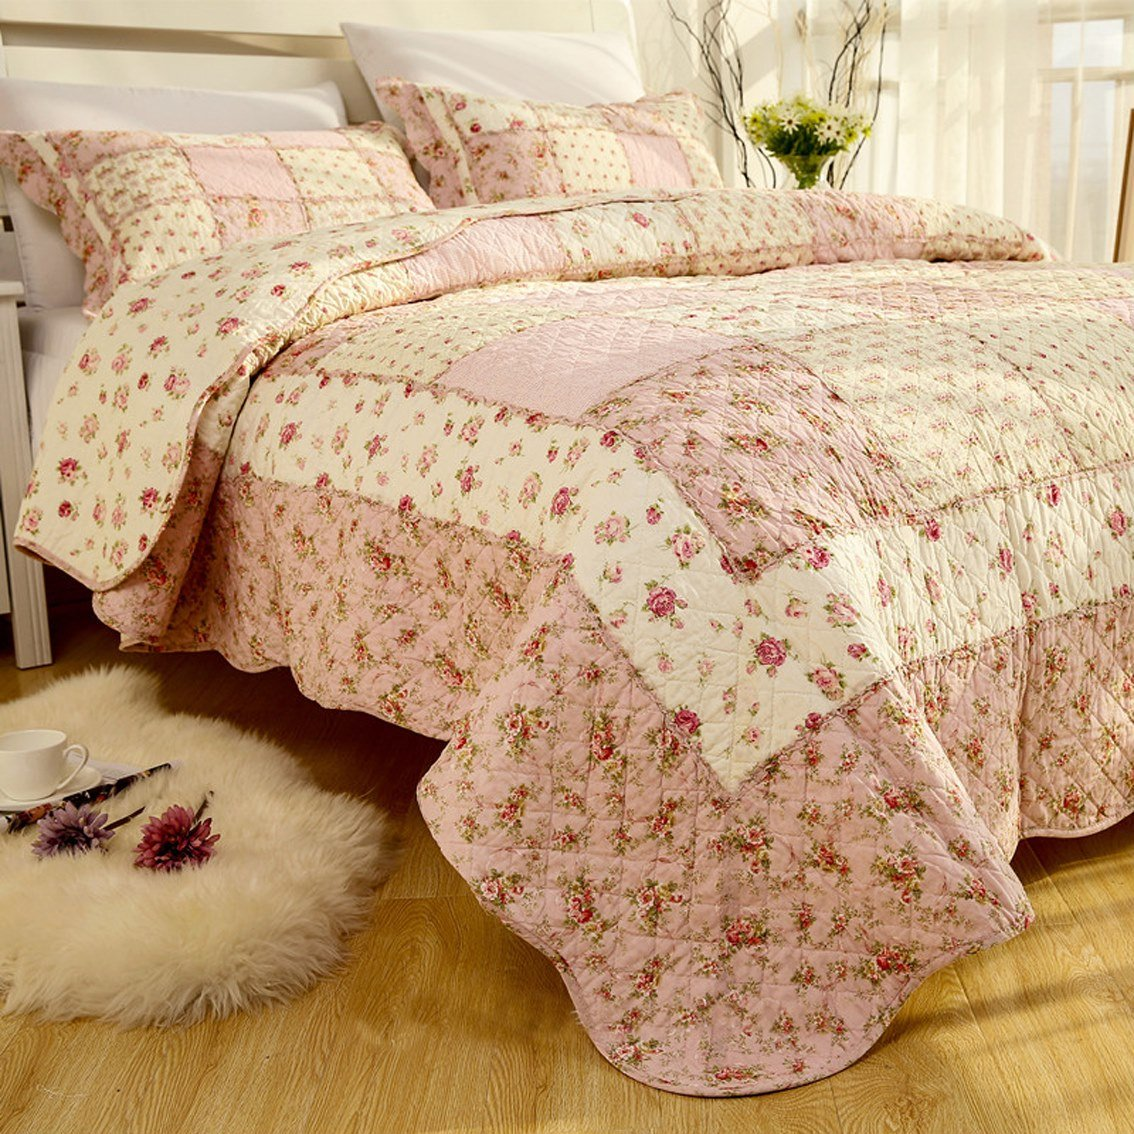 MAXYOYO Real Patchwork Girls Printed Cotton Quilt Set 3Pcs,Beautiful Little Floral Printing Plaid Design Cotton Quilt Throw,Cotton Bedspreads Full/Queen Size